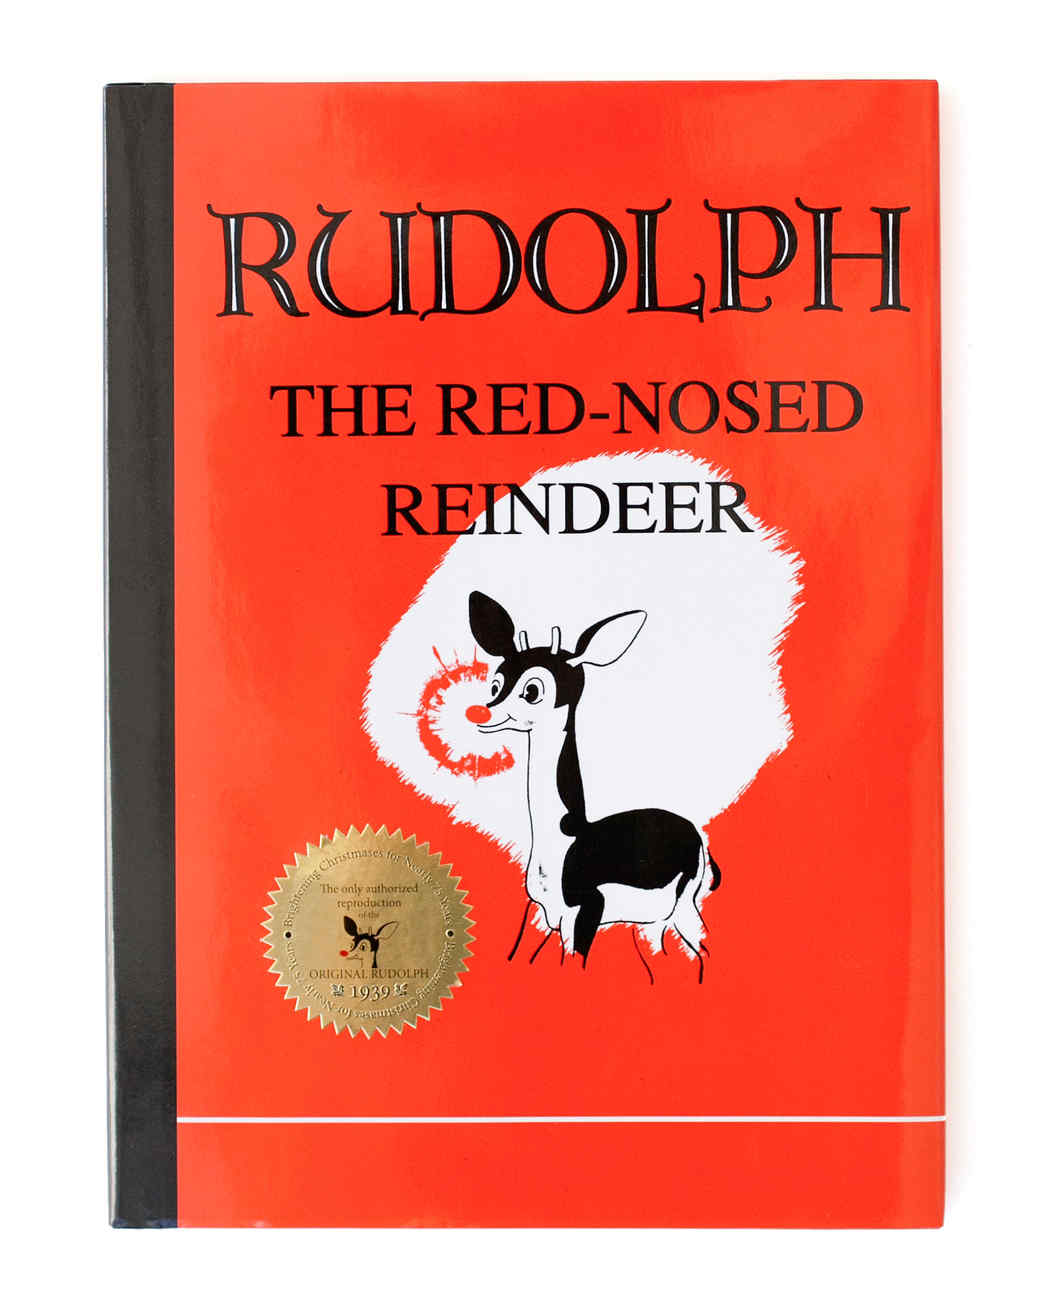 rudolph-the-red-nosed-reindeer.jpg